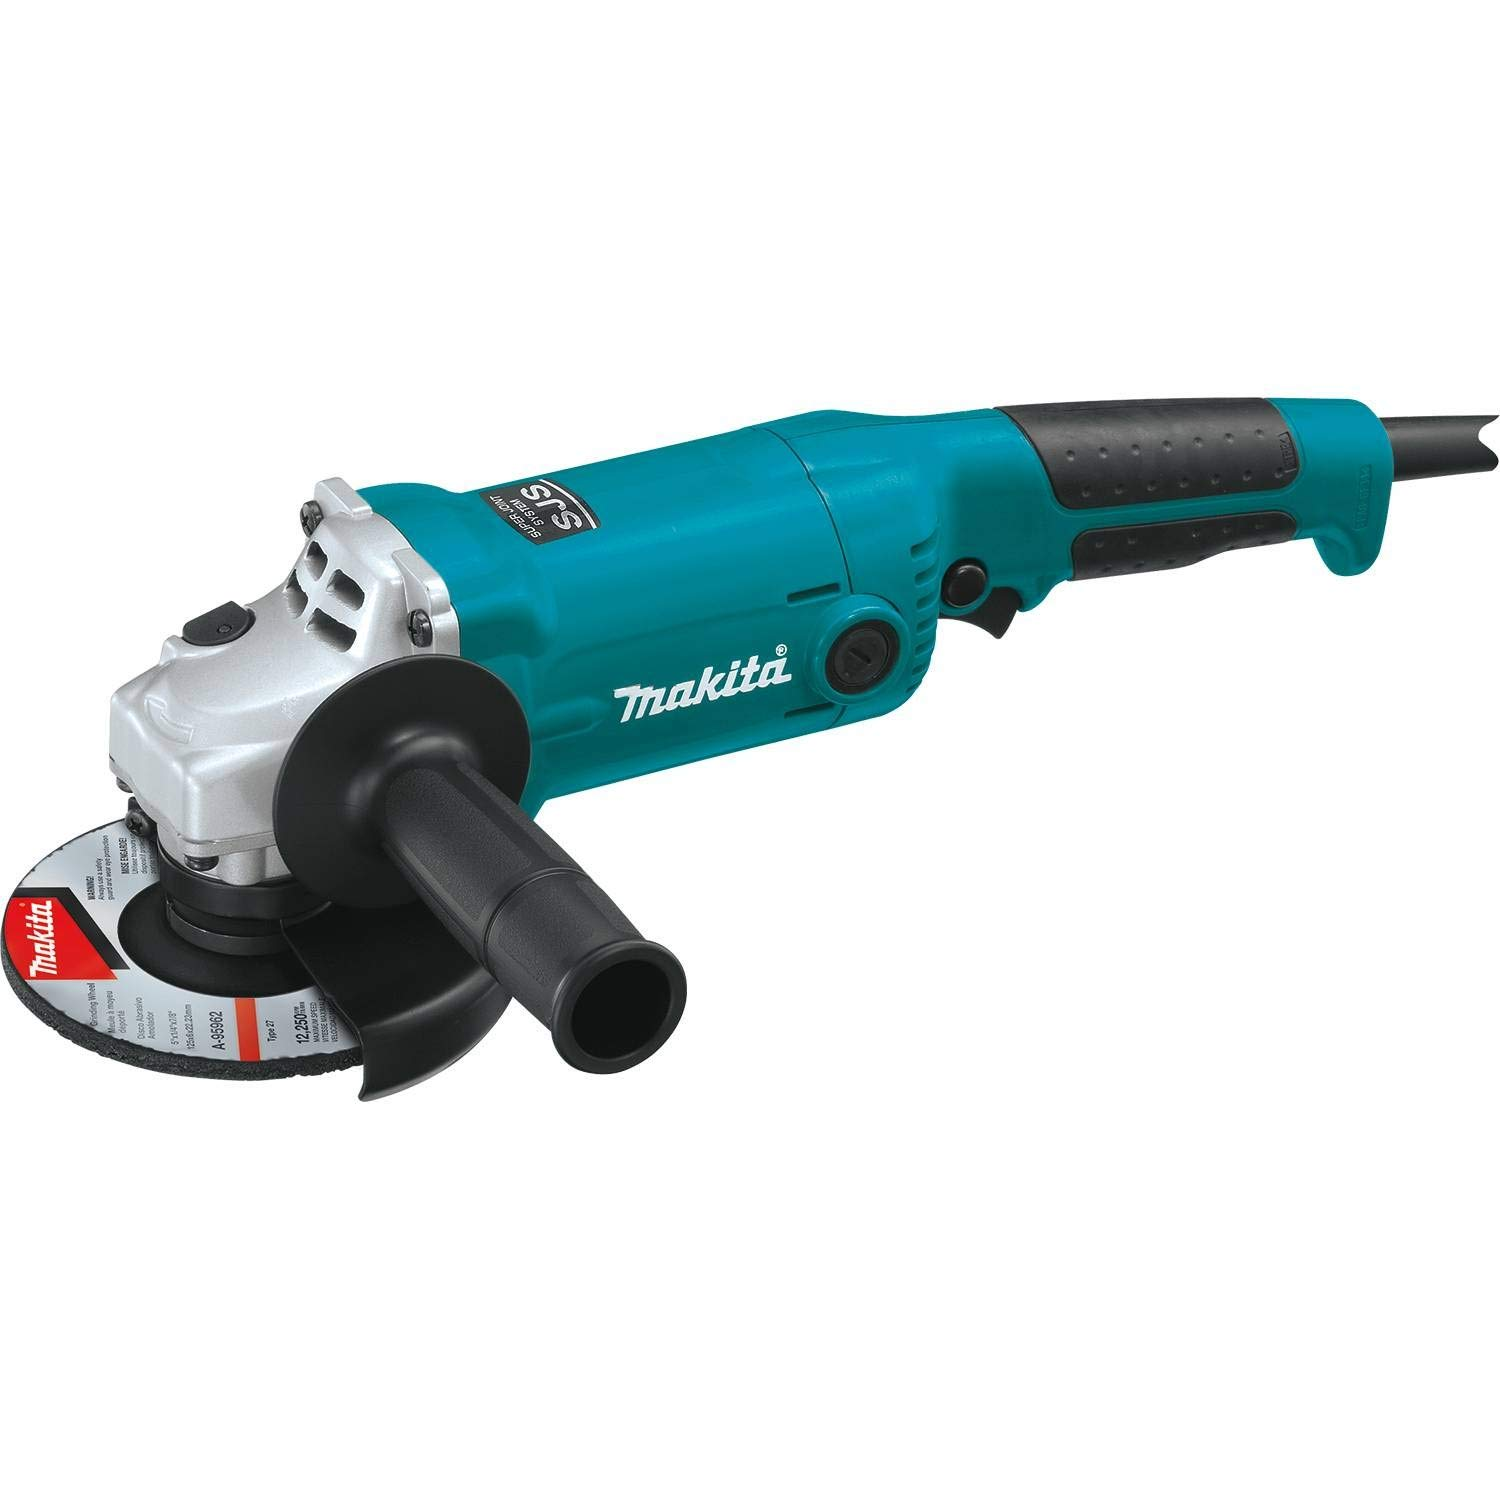 Makita GA5020Y 5 SJS Angle Grinder, with AC Dc Switch